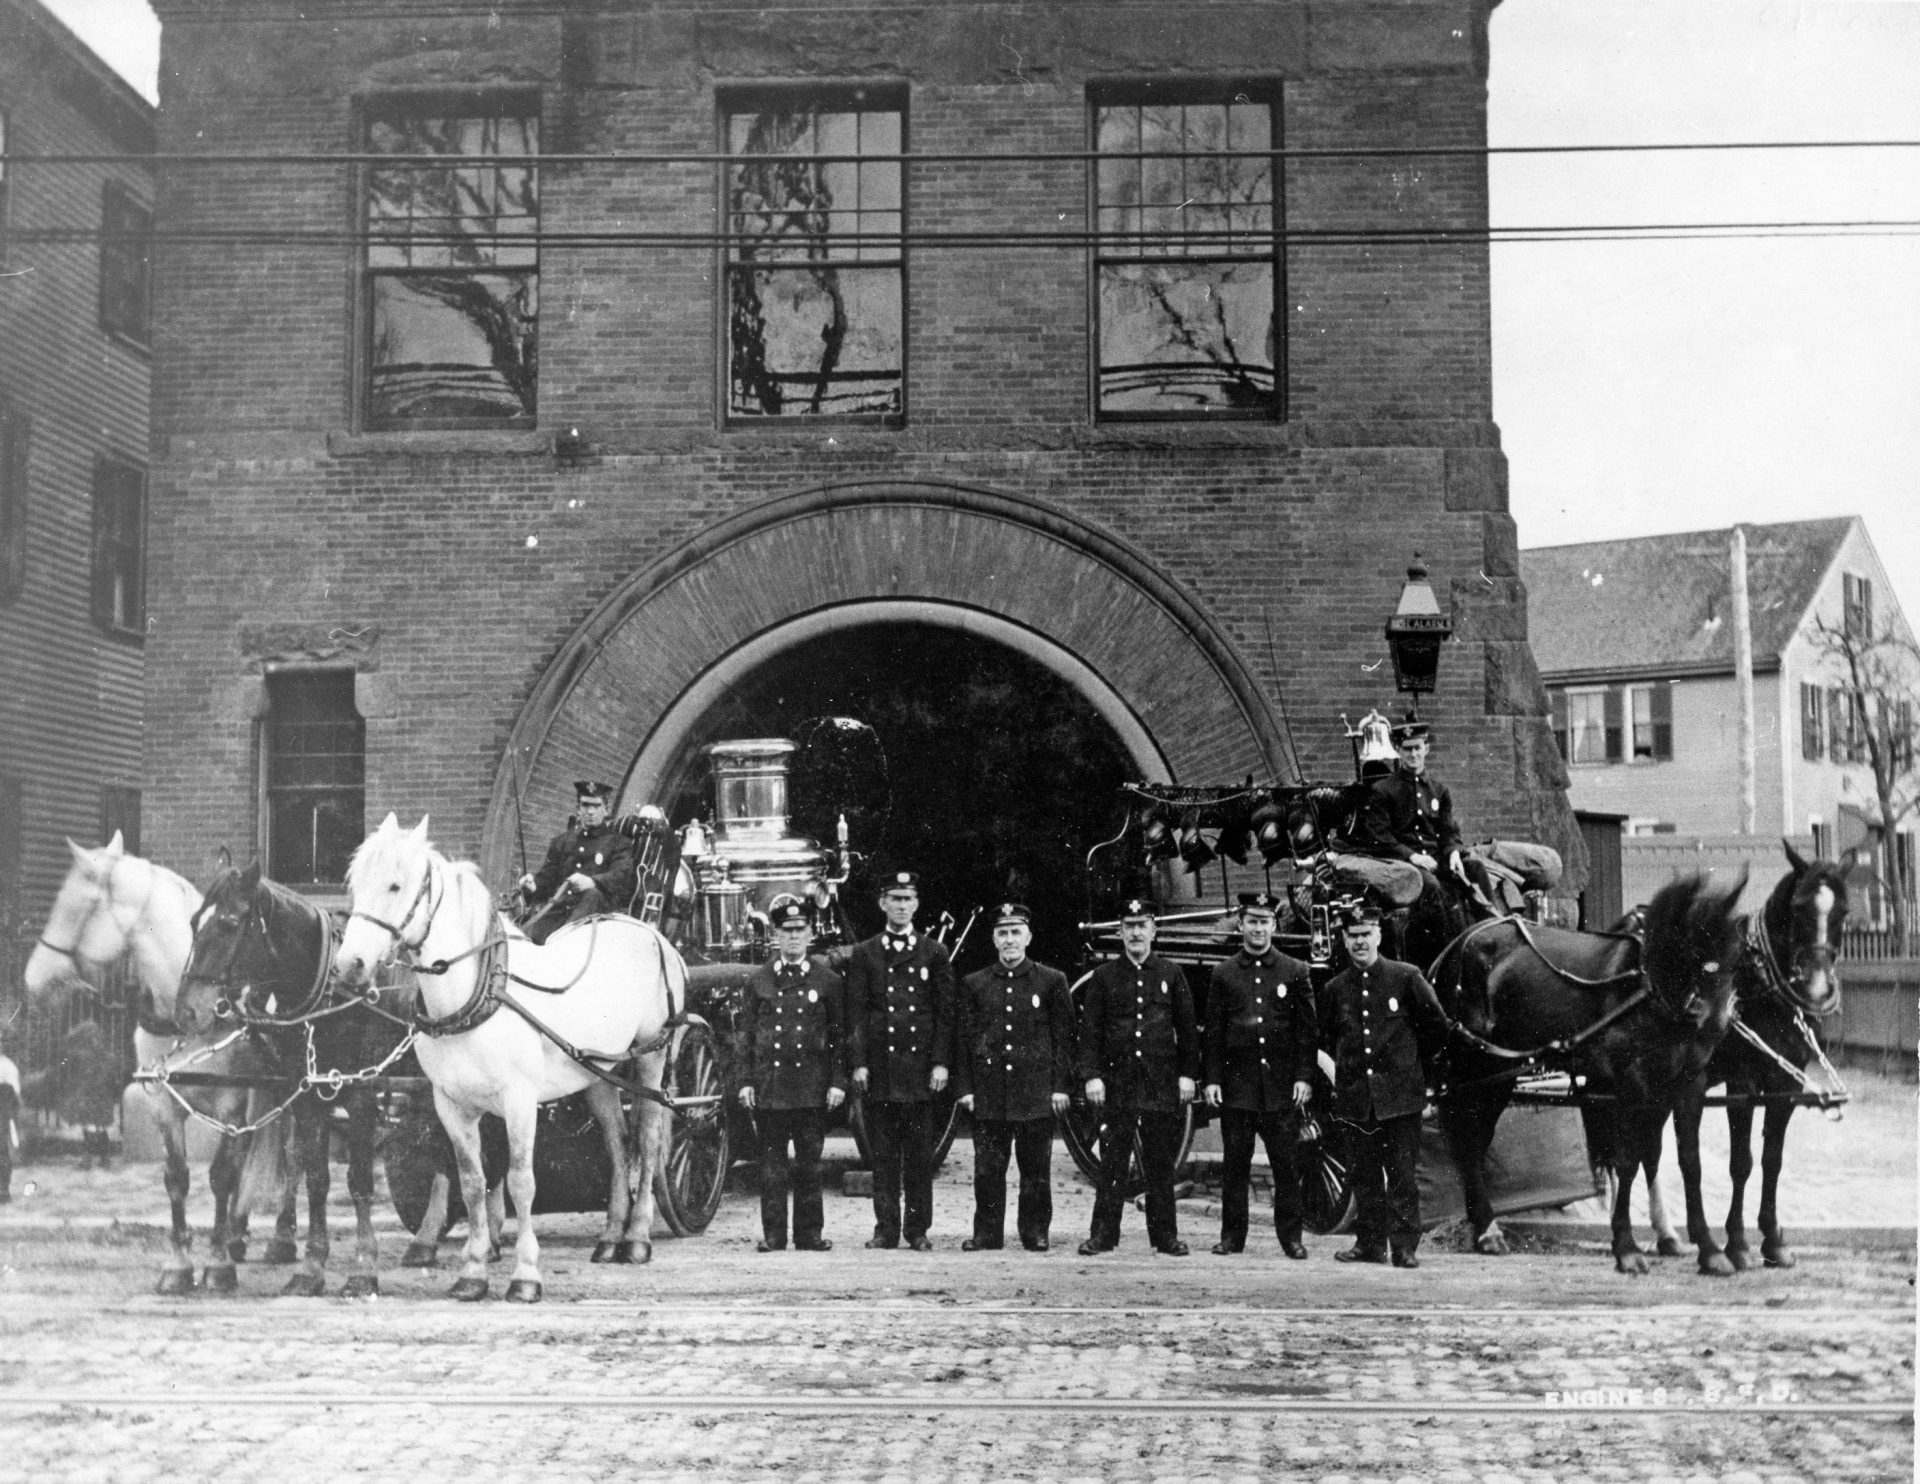 WesternAve Firehouse 1913